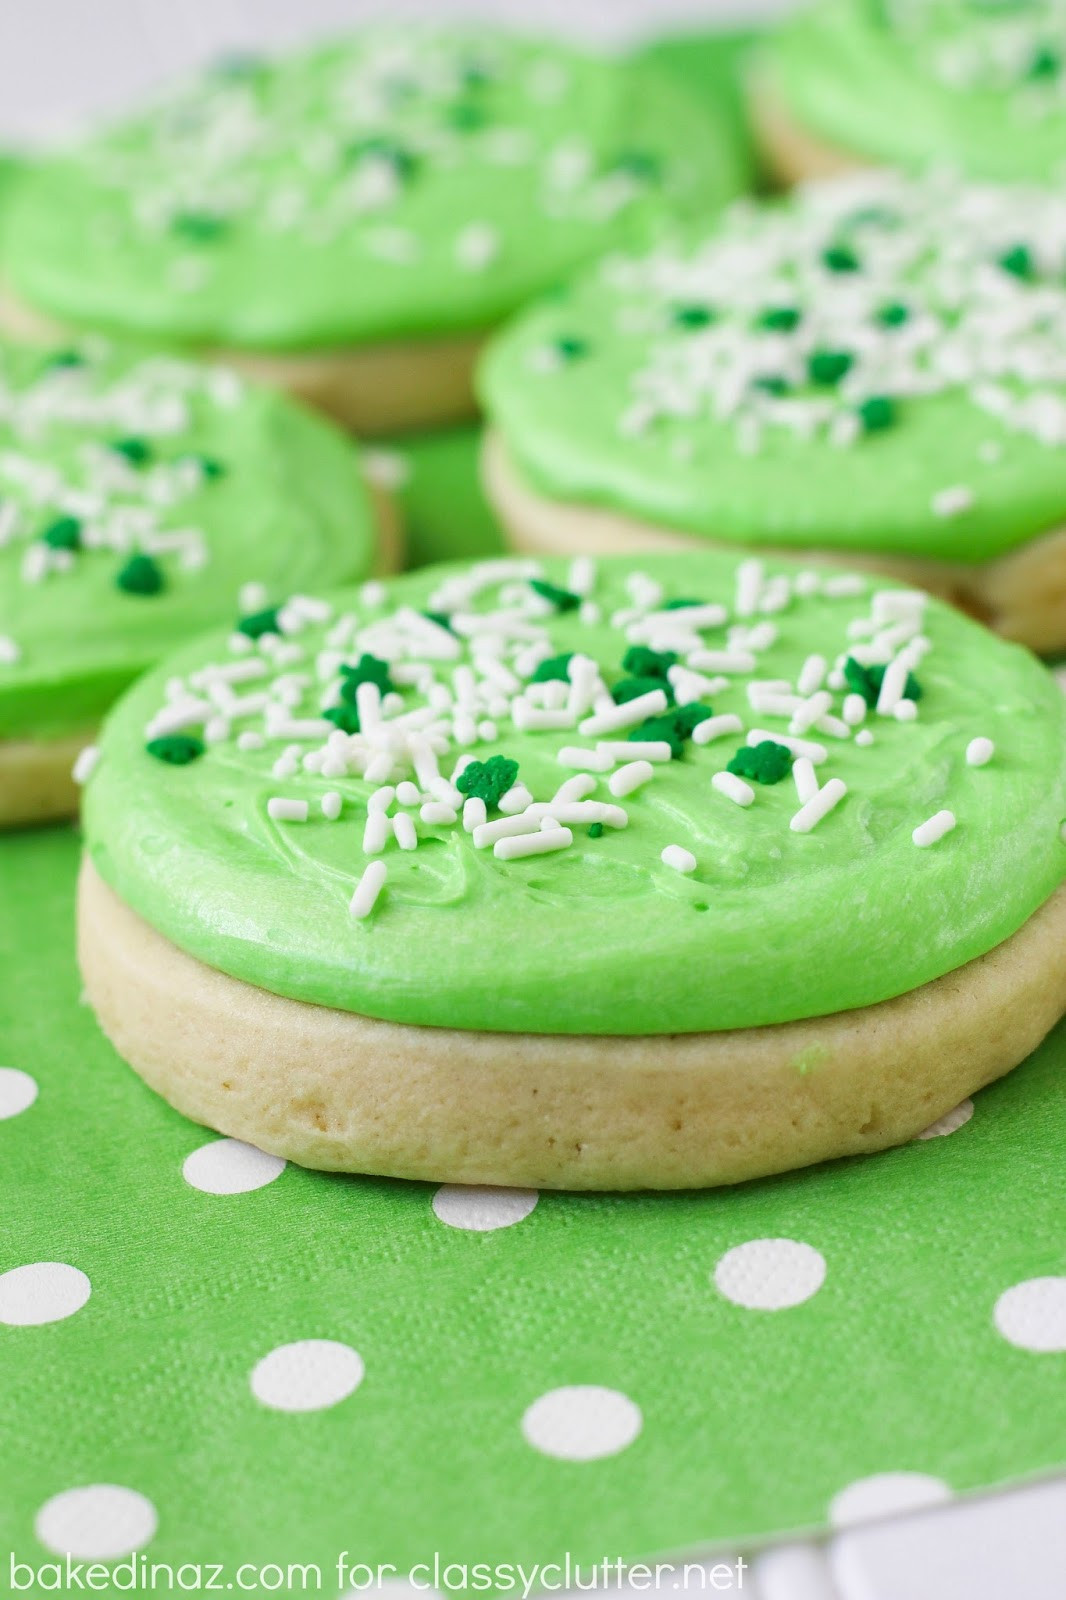 Sugar Cookies With Icing  Heavenly Sugar Cookies Lofthouse Style Classy Clutter